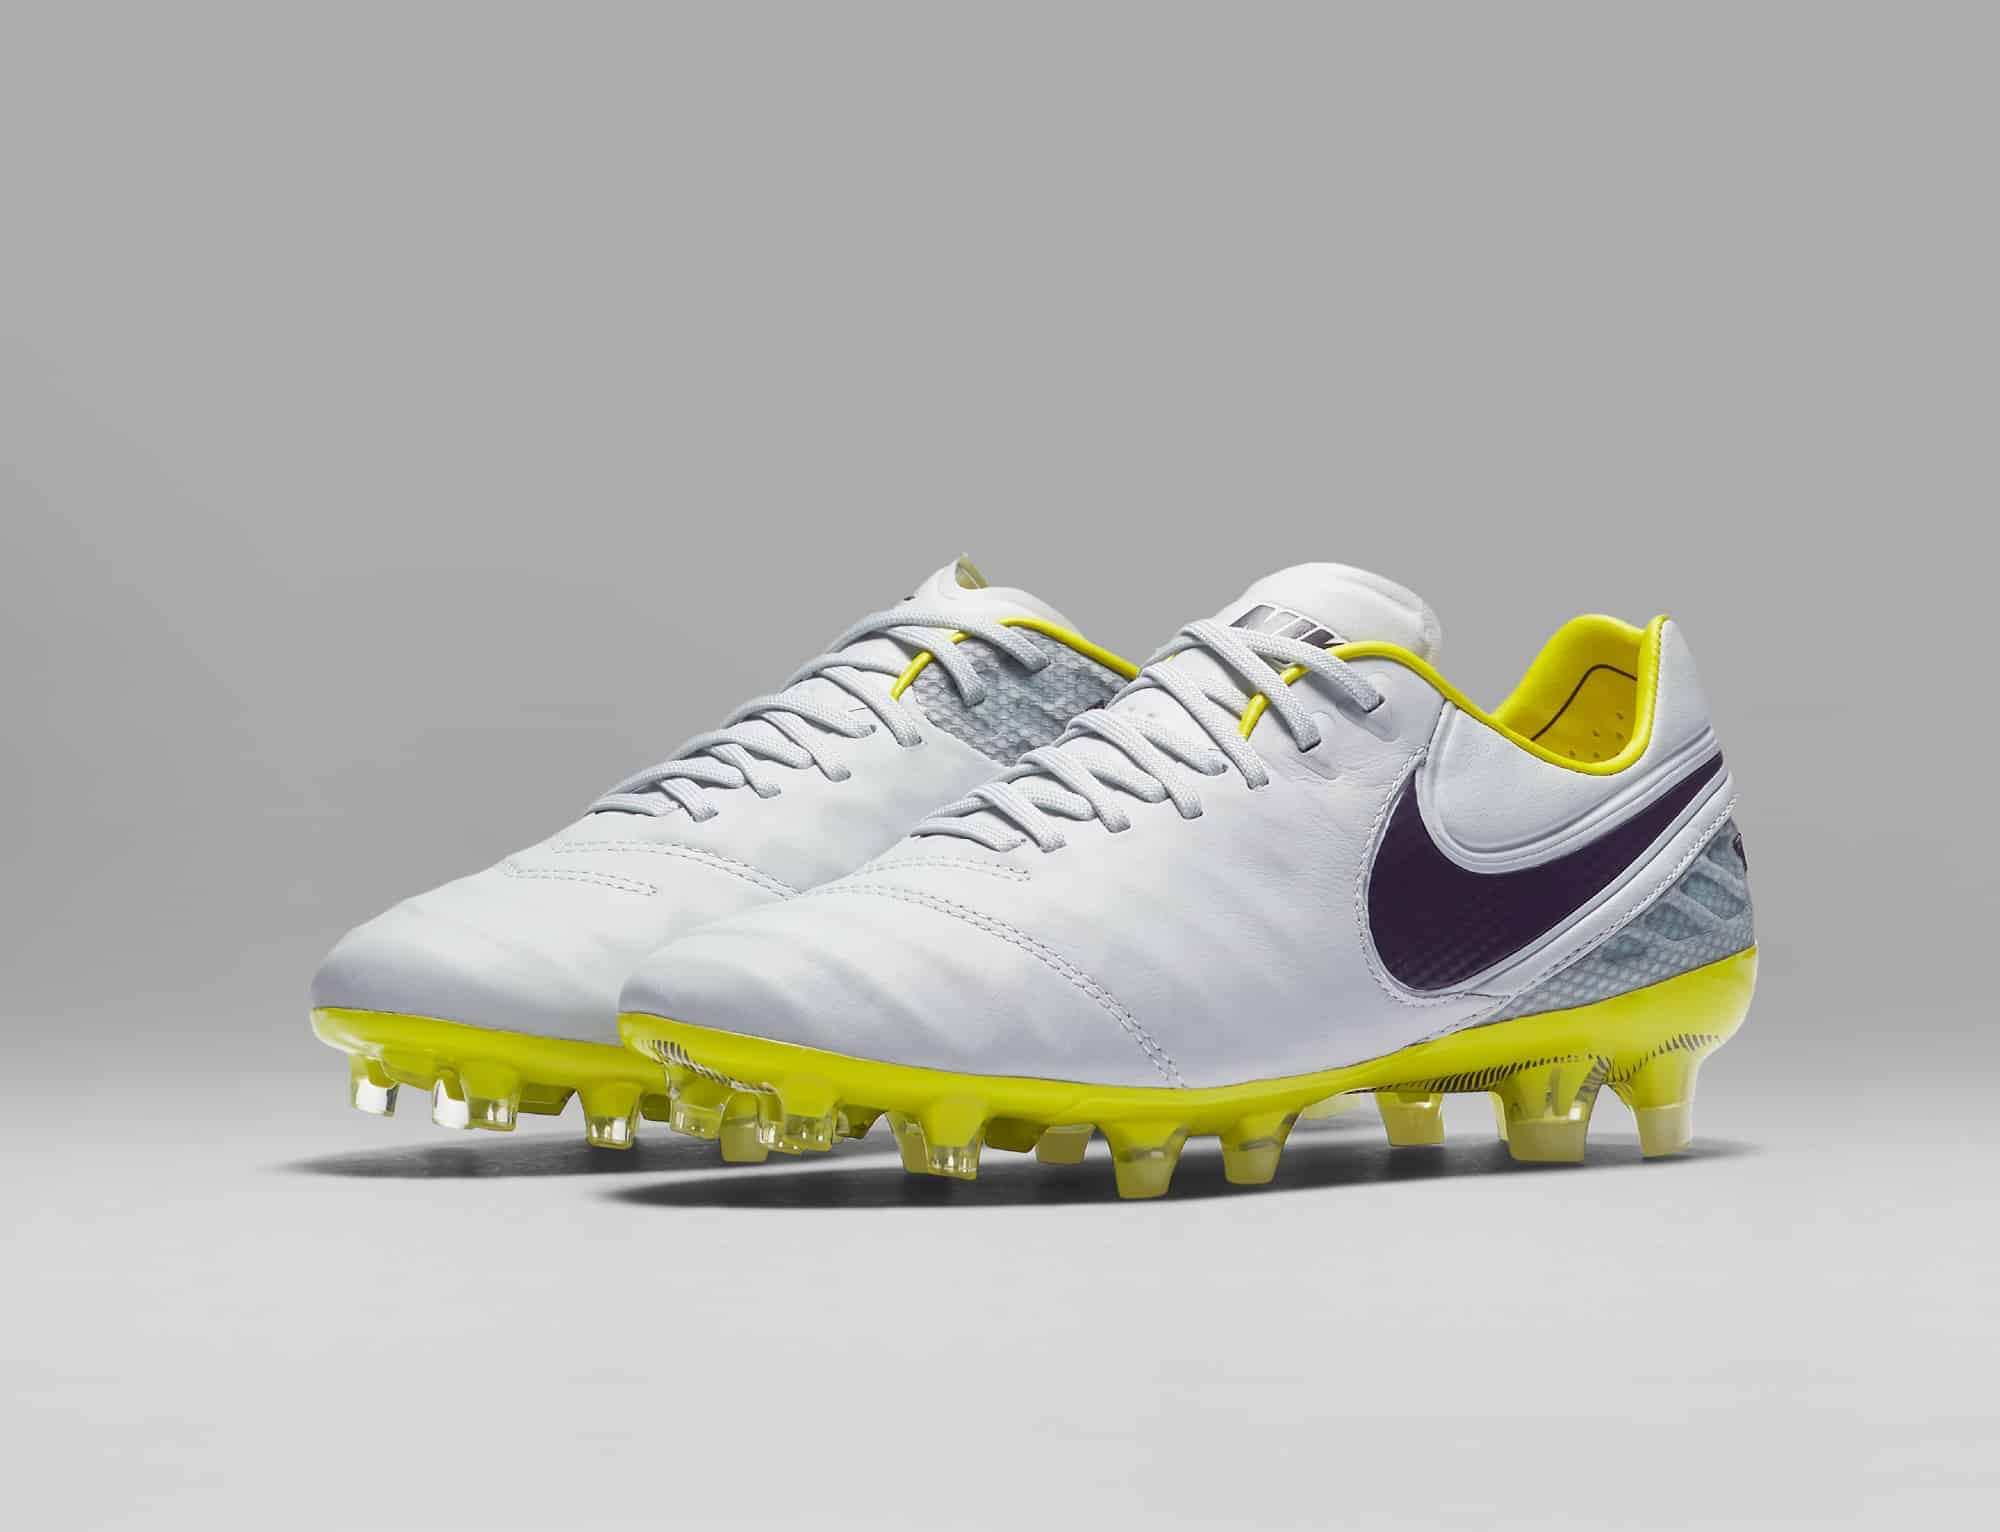 chaussures-football-Nike-Tiempo-Legend-6-Femmes-Women-Radiation-Flare-img4